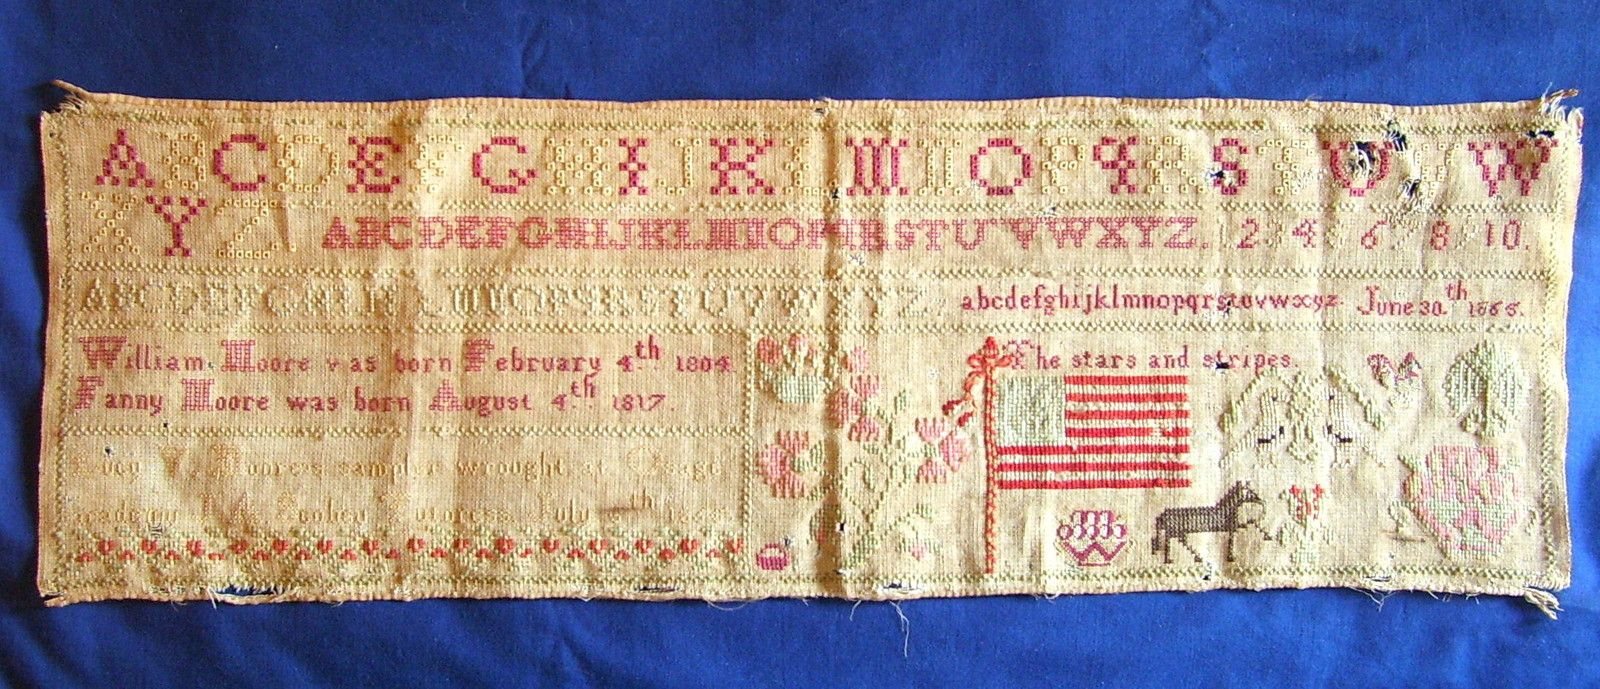 This sampler was made by Lucy V. Moore in 1865 at the Osage Academy. As nearly as I can read from the faded letters, J. A. Scobey was her tutoress and the sampler was done in July. The sampler has her parents' names along with different renderings of the alphabet, numbers, and probably items of interest to Lucy